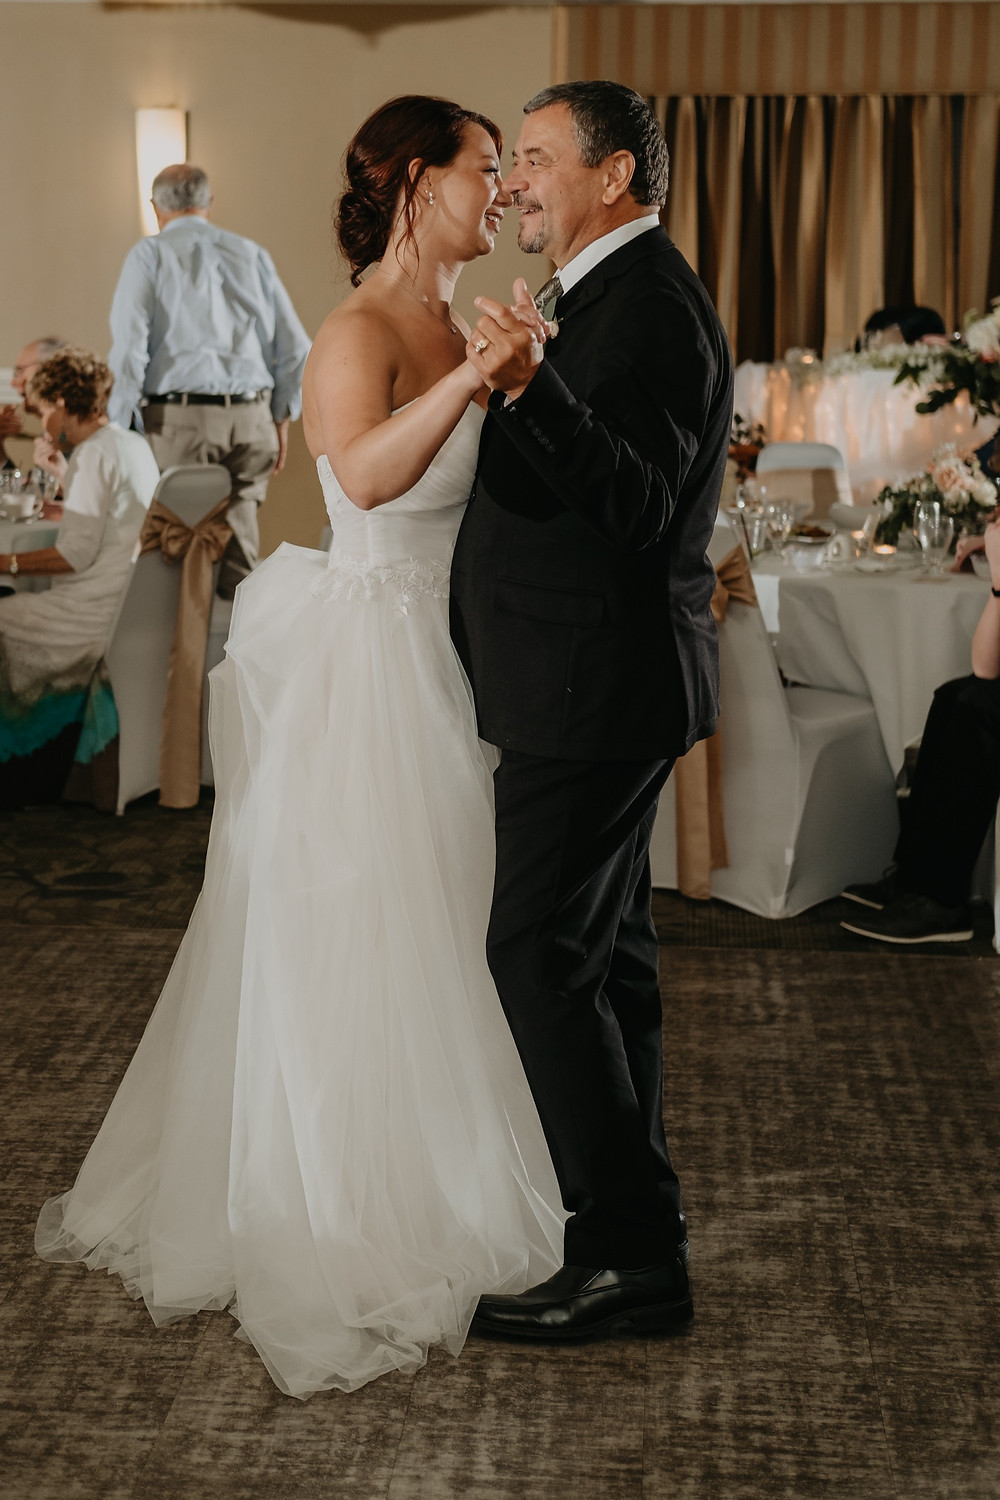 Bride and father wedding dance. Photographed by Nicole Leanne Photography.